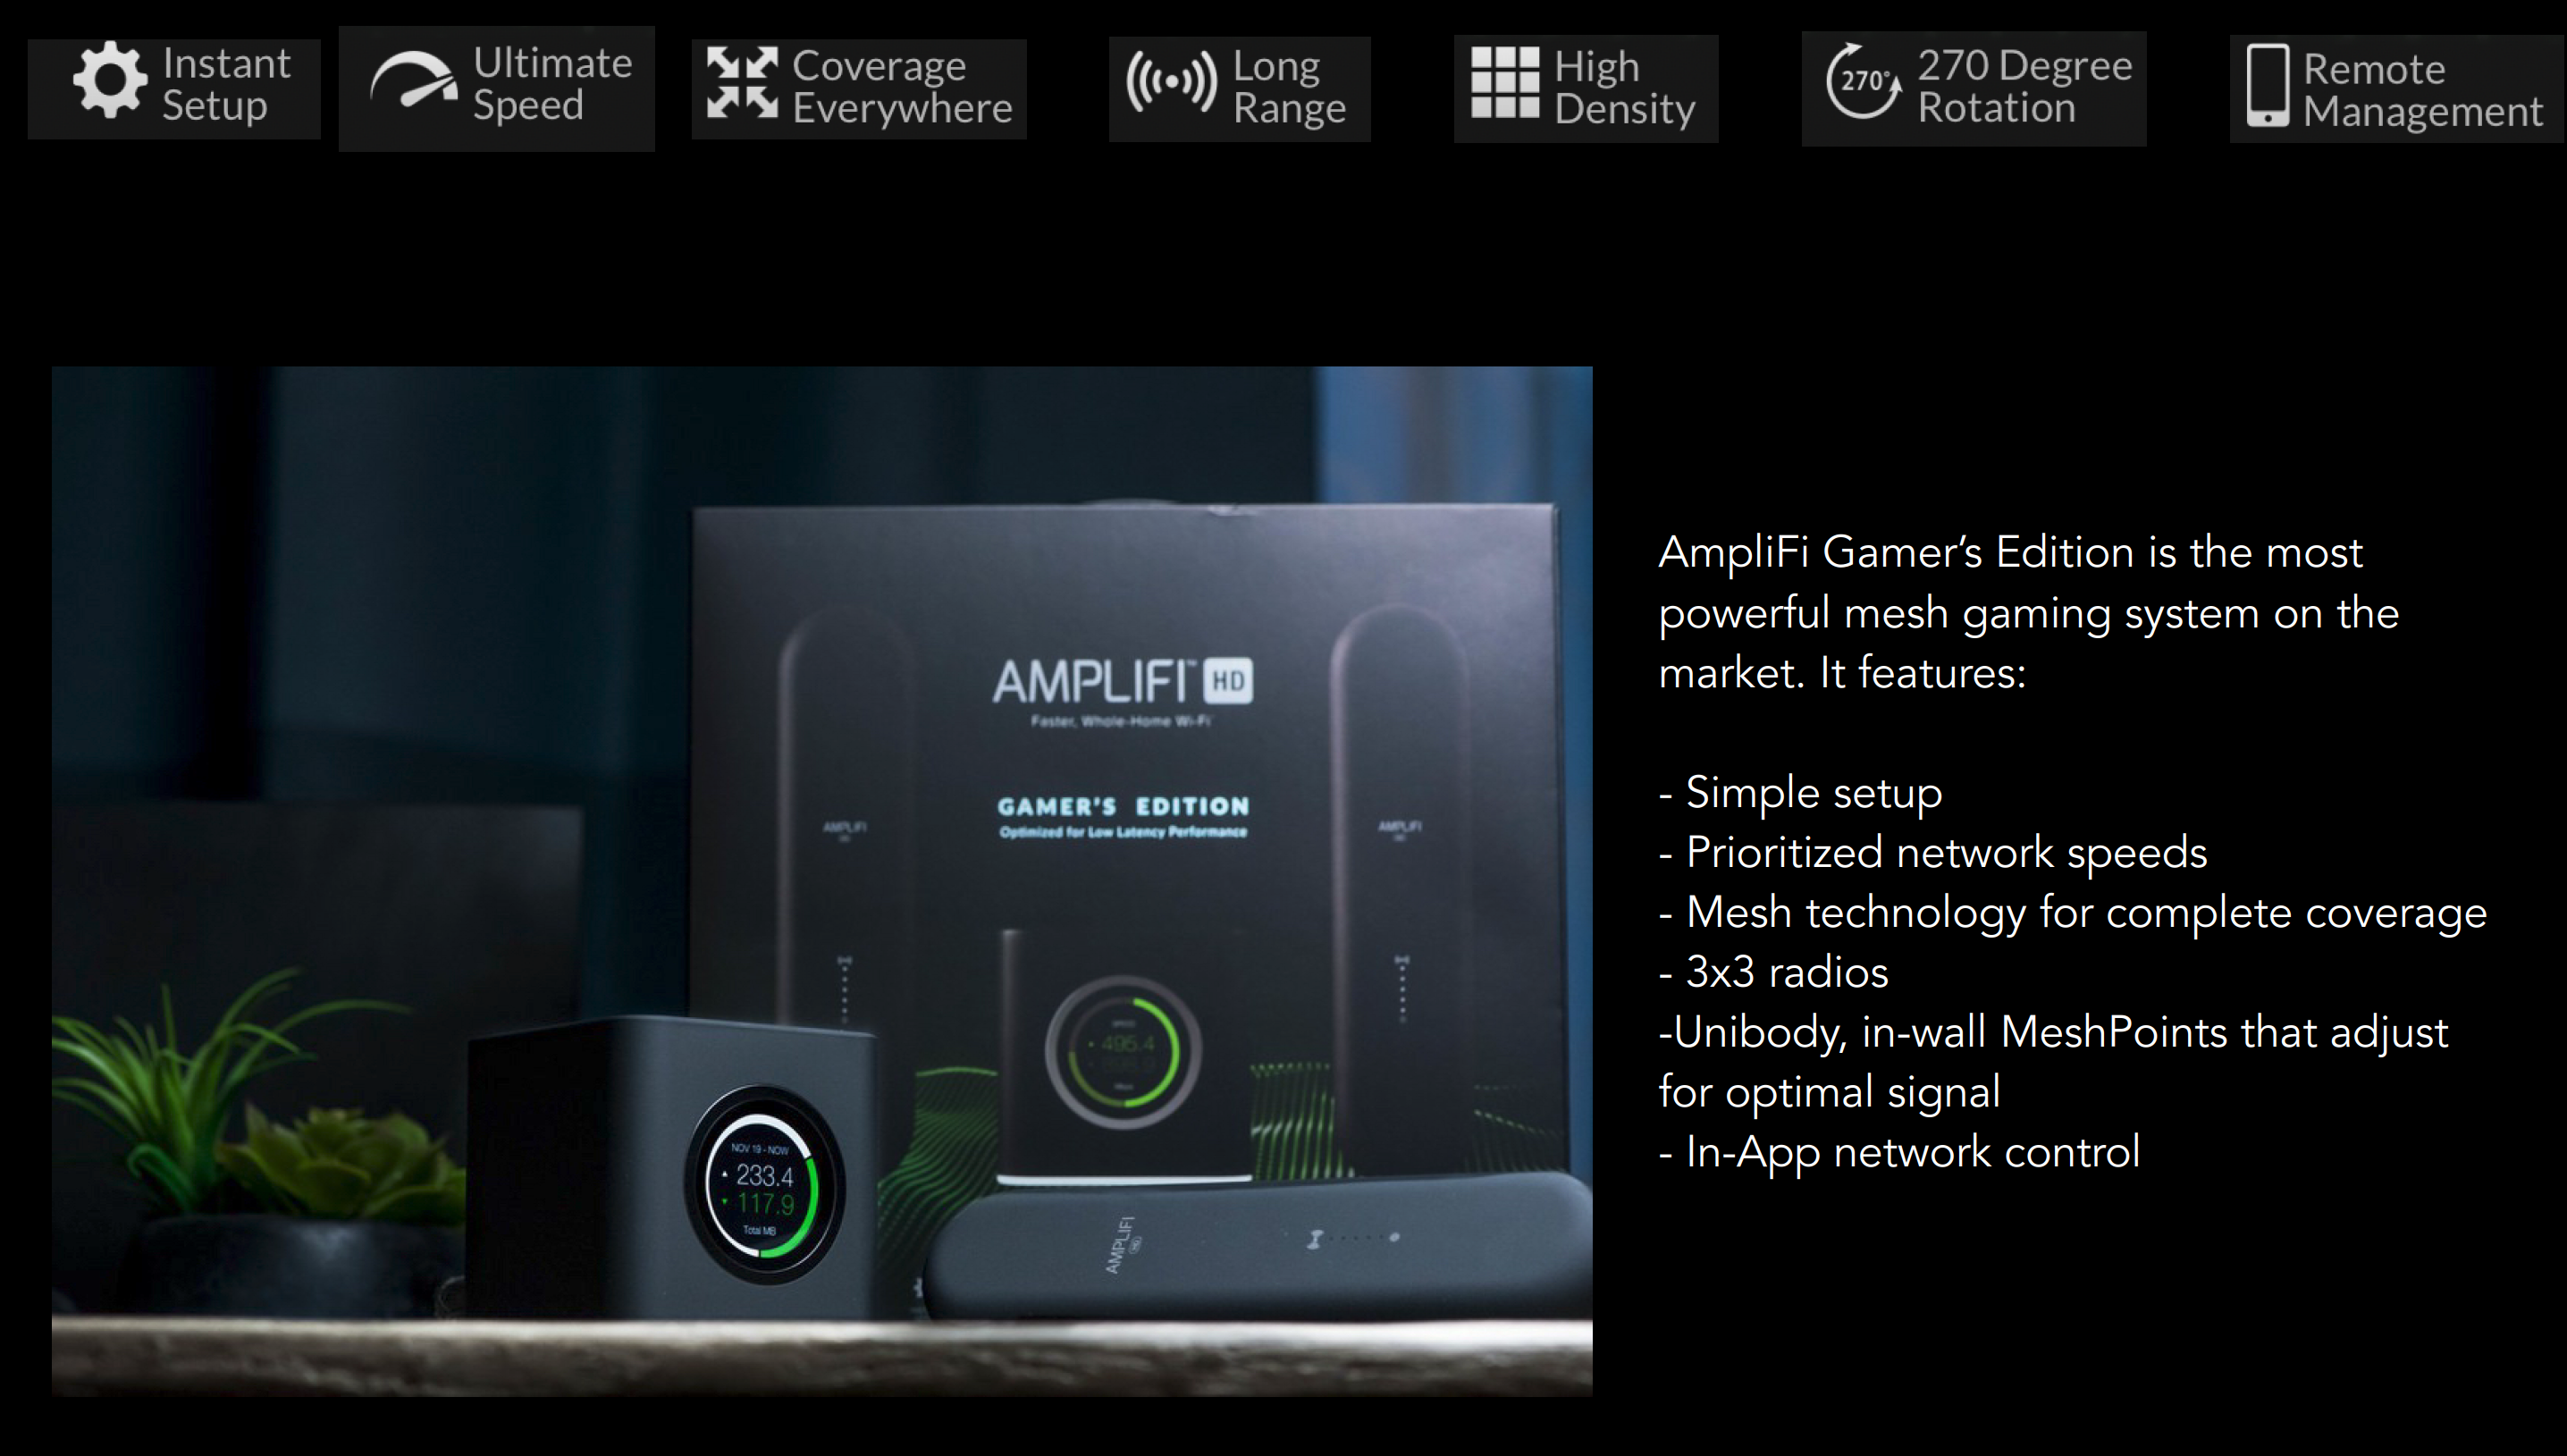 Ubiquiti Extends Amplifi HD Mesh Networking Family with